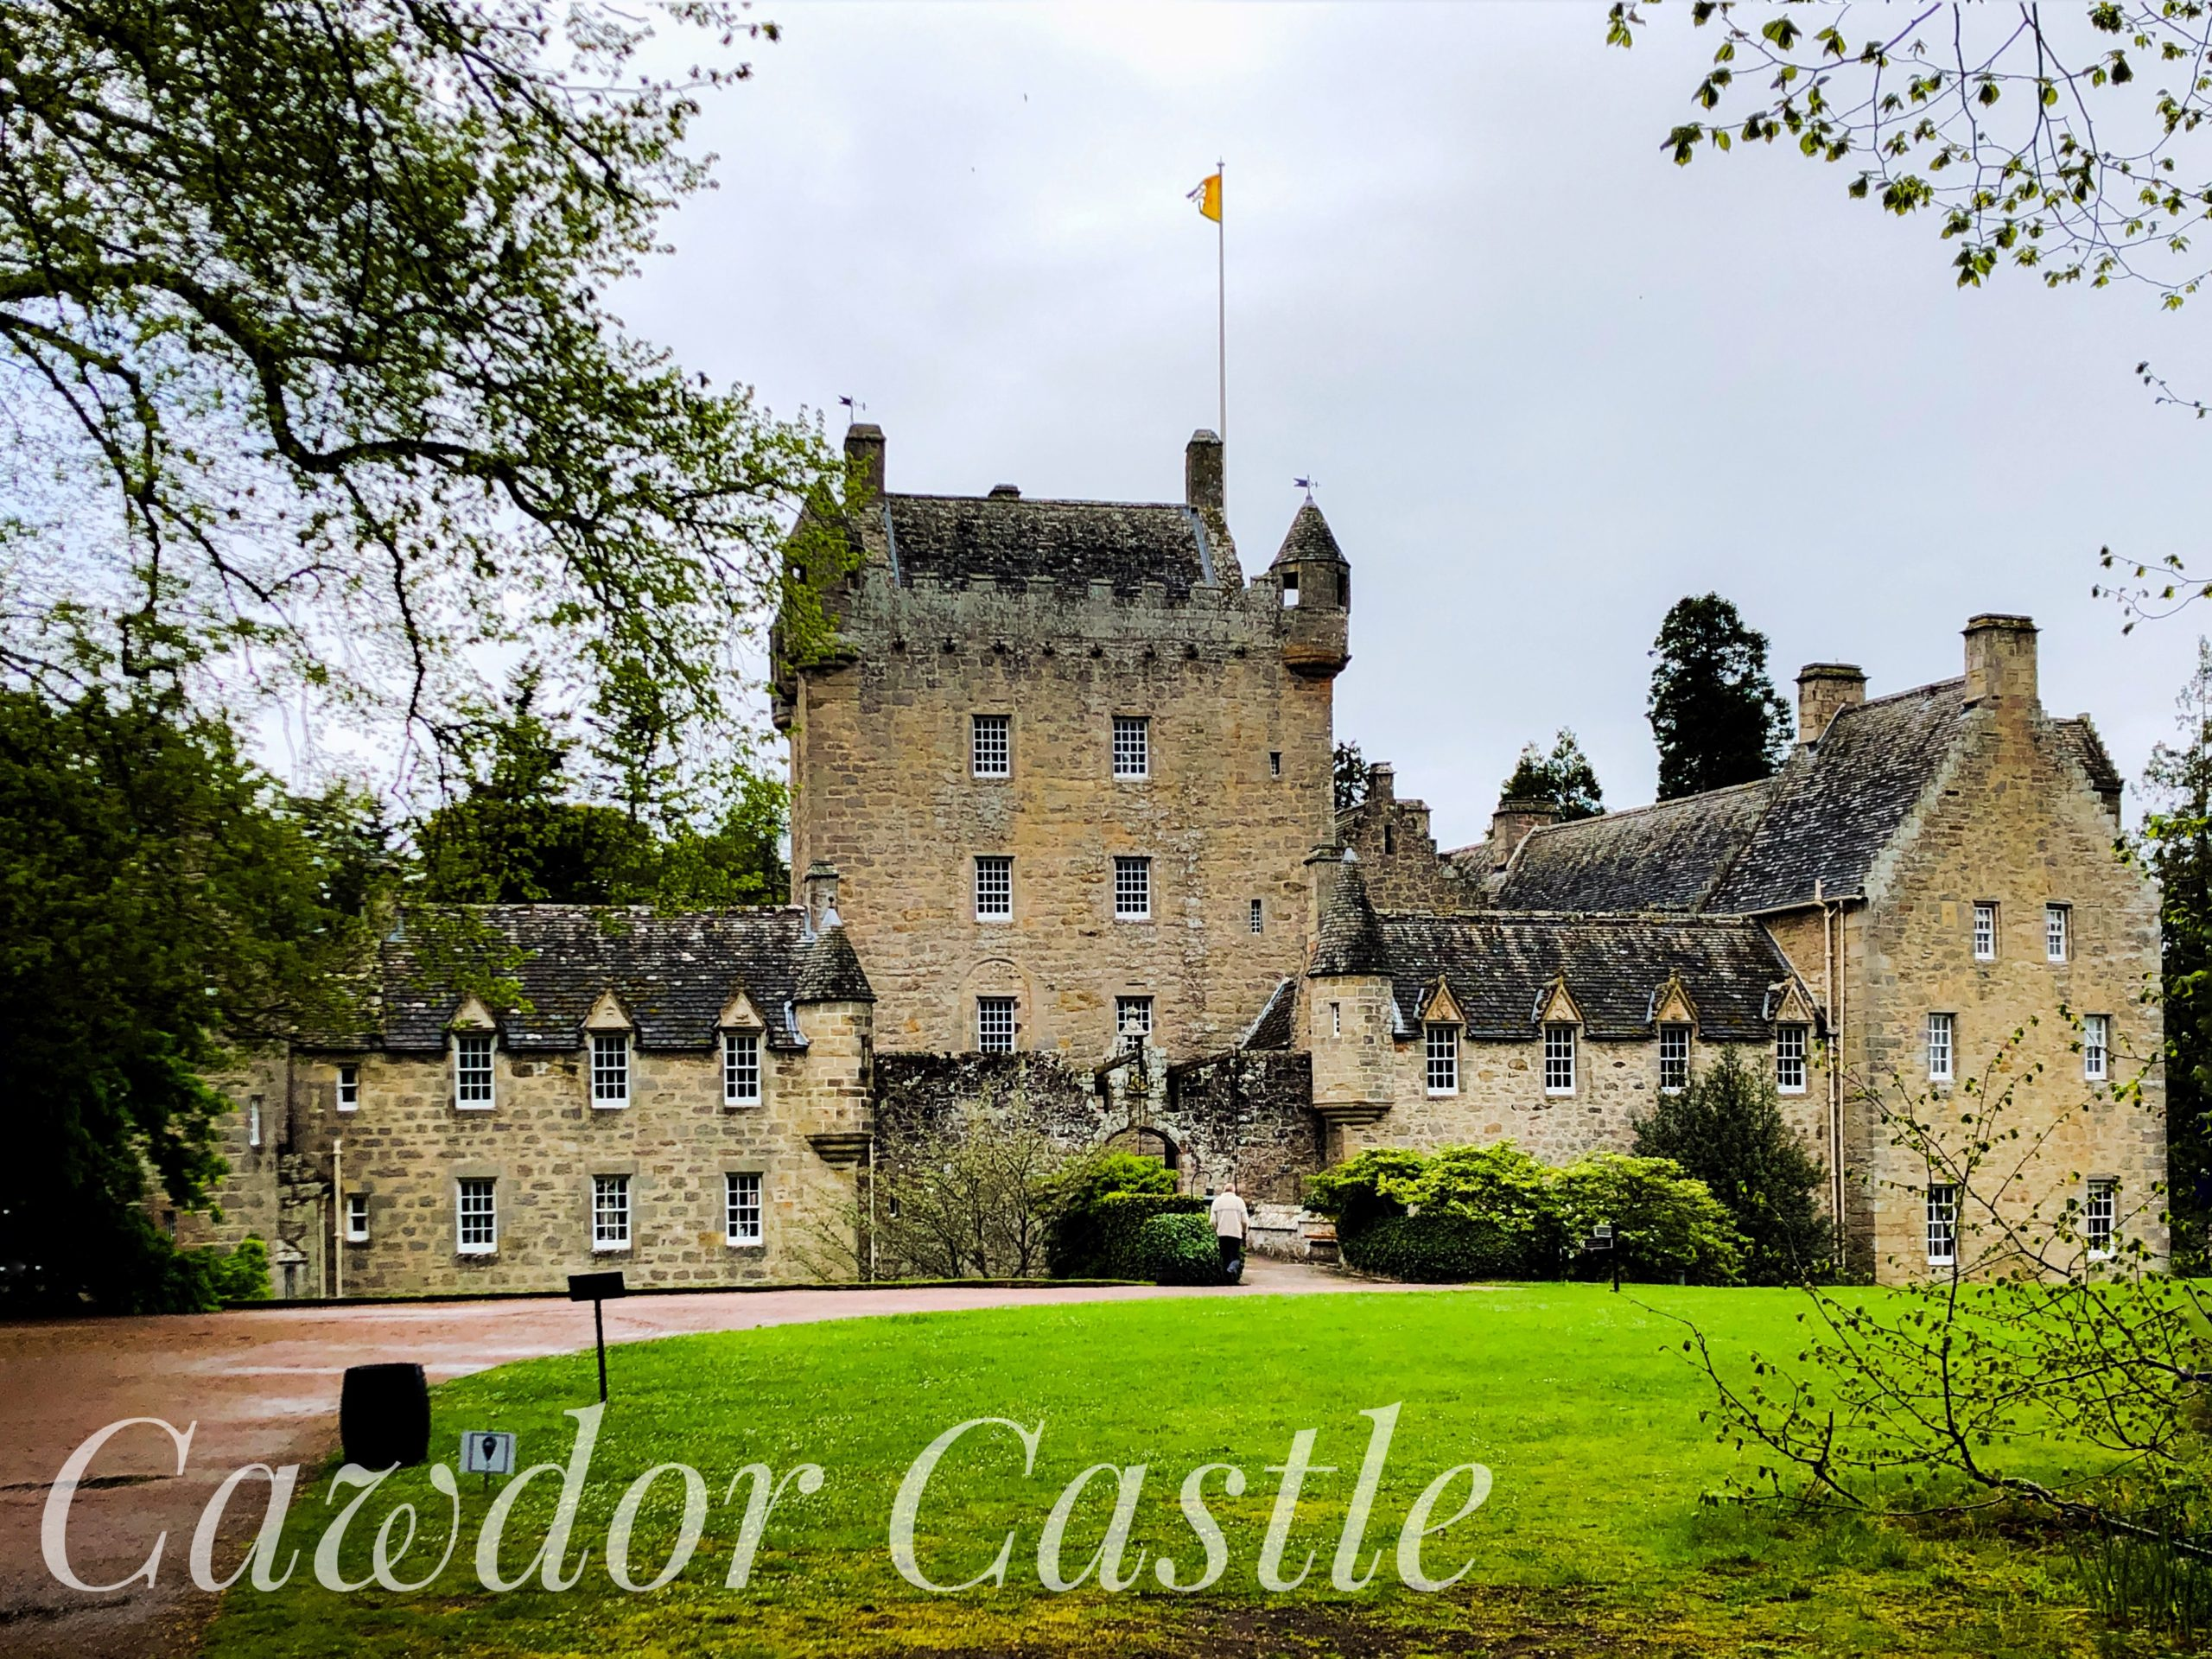 Cawdor Castle, located in Nairnshire, 14 miles from Inverness, Scotland